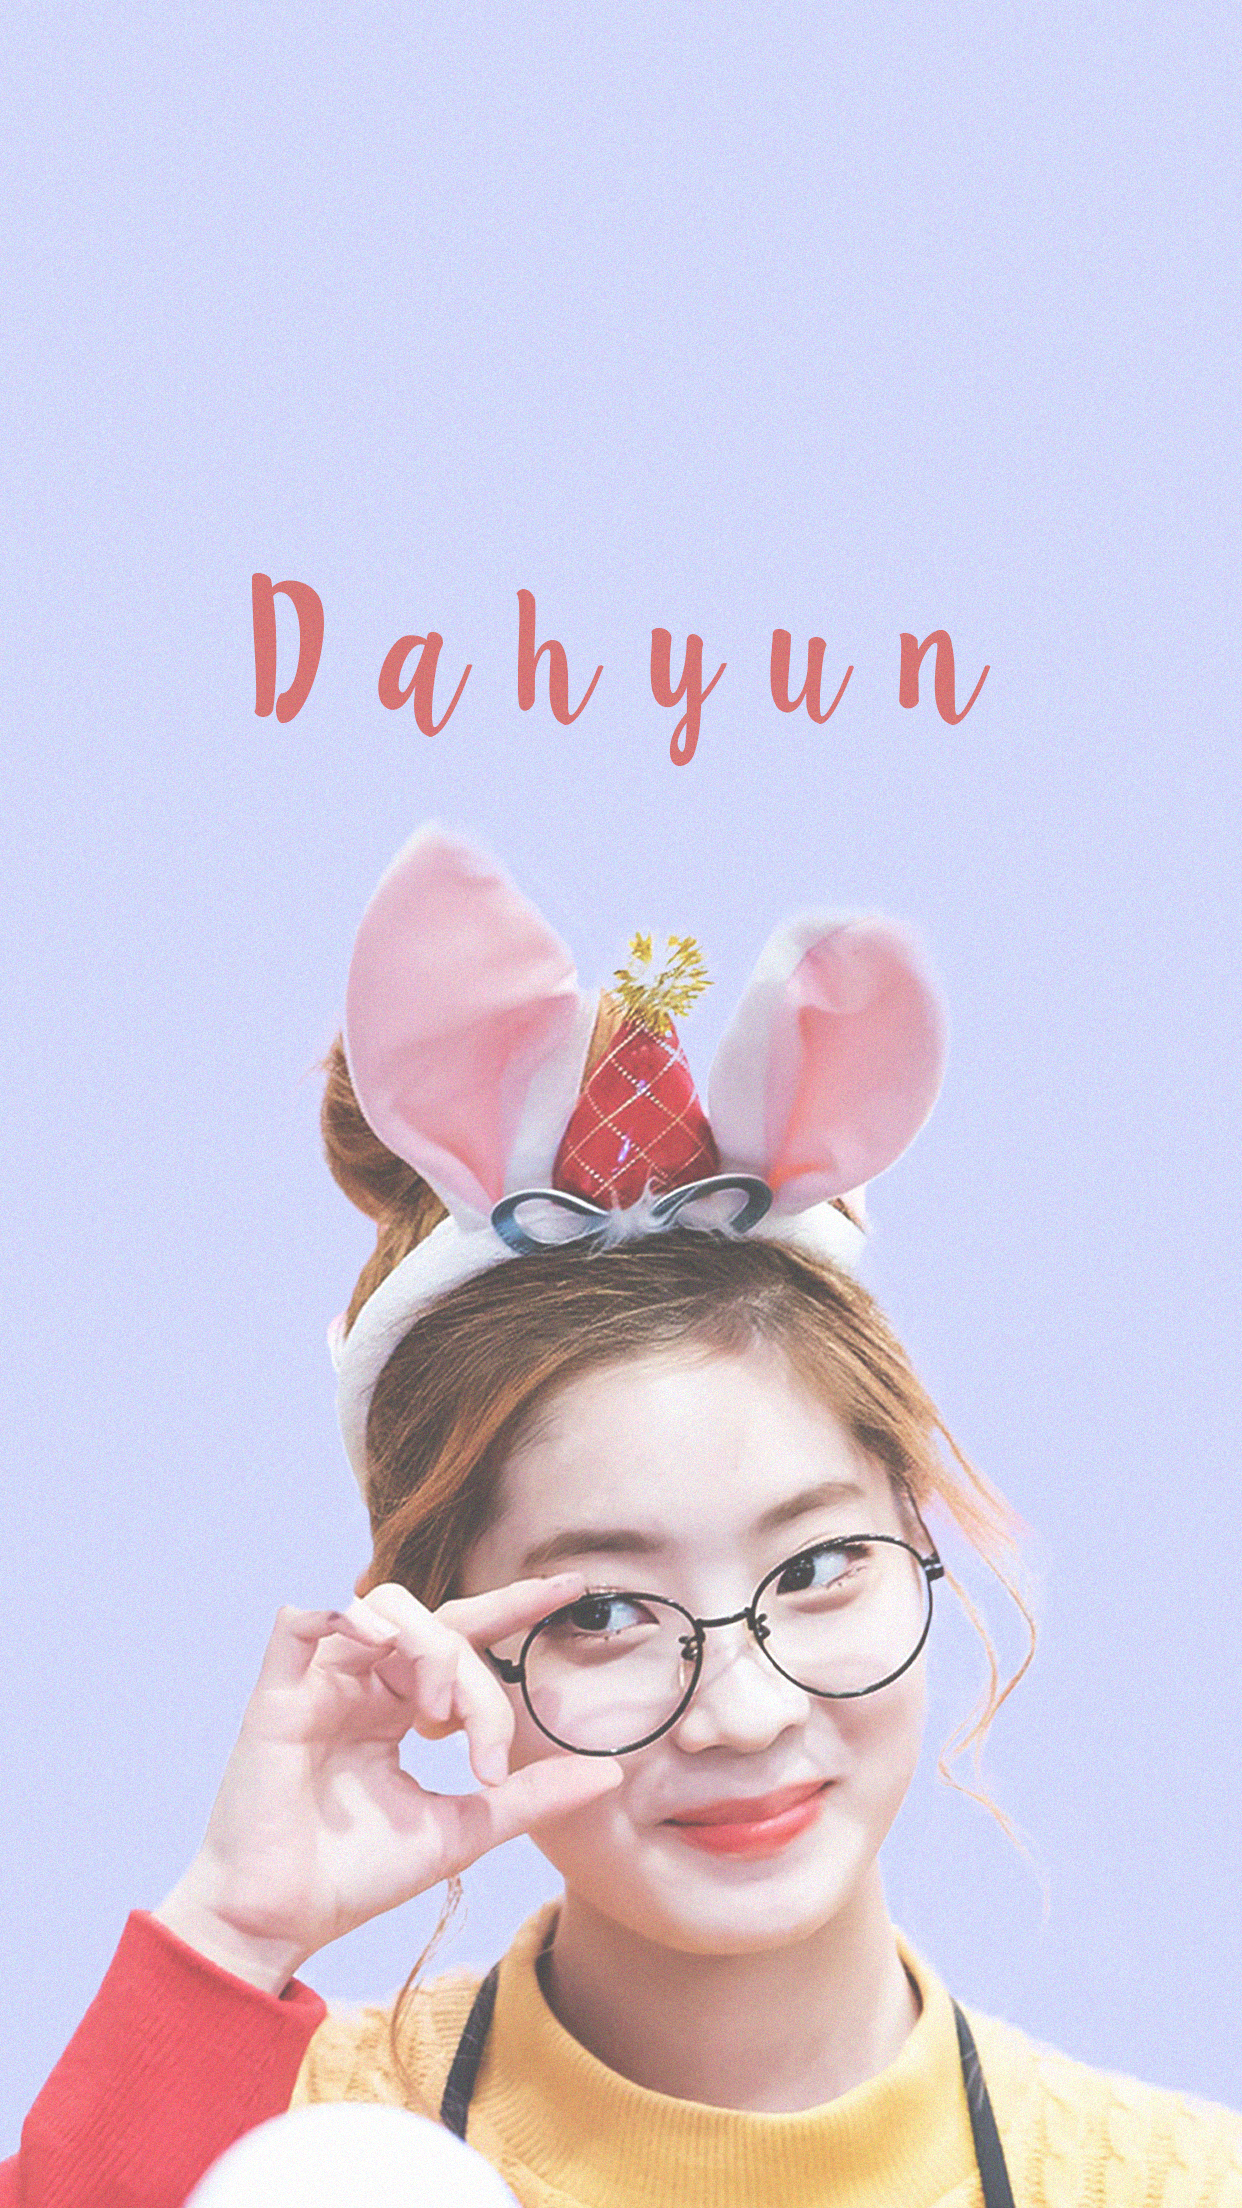 KIM DAHYUN WALLPAPER kpop twice wallpaper dahyun